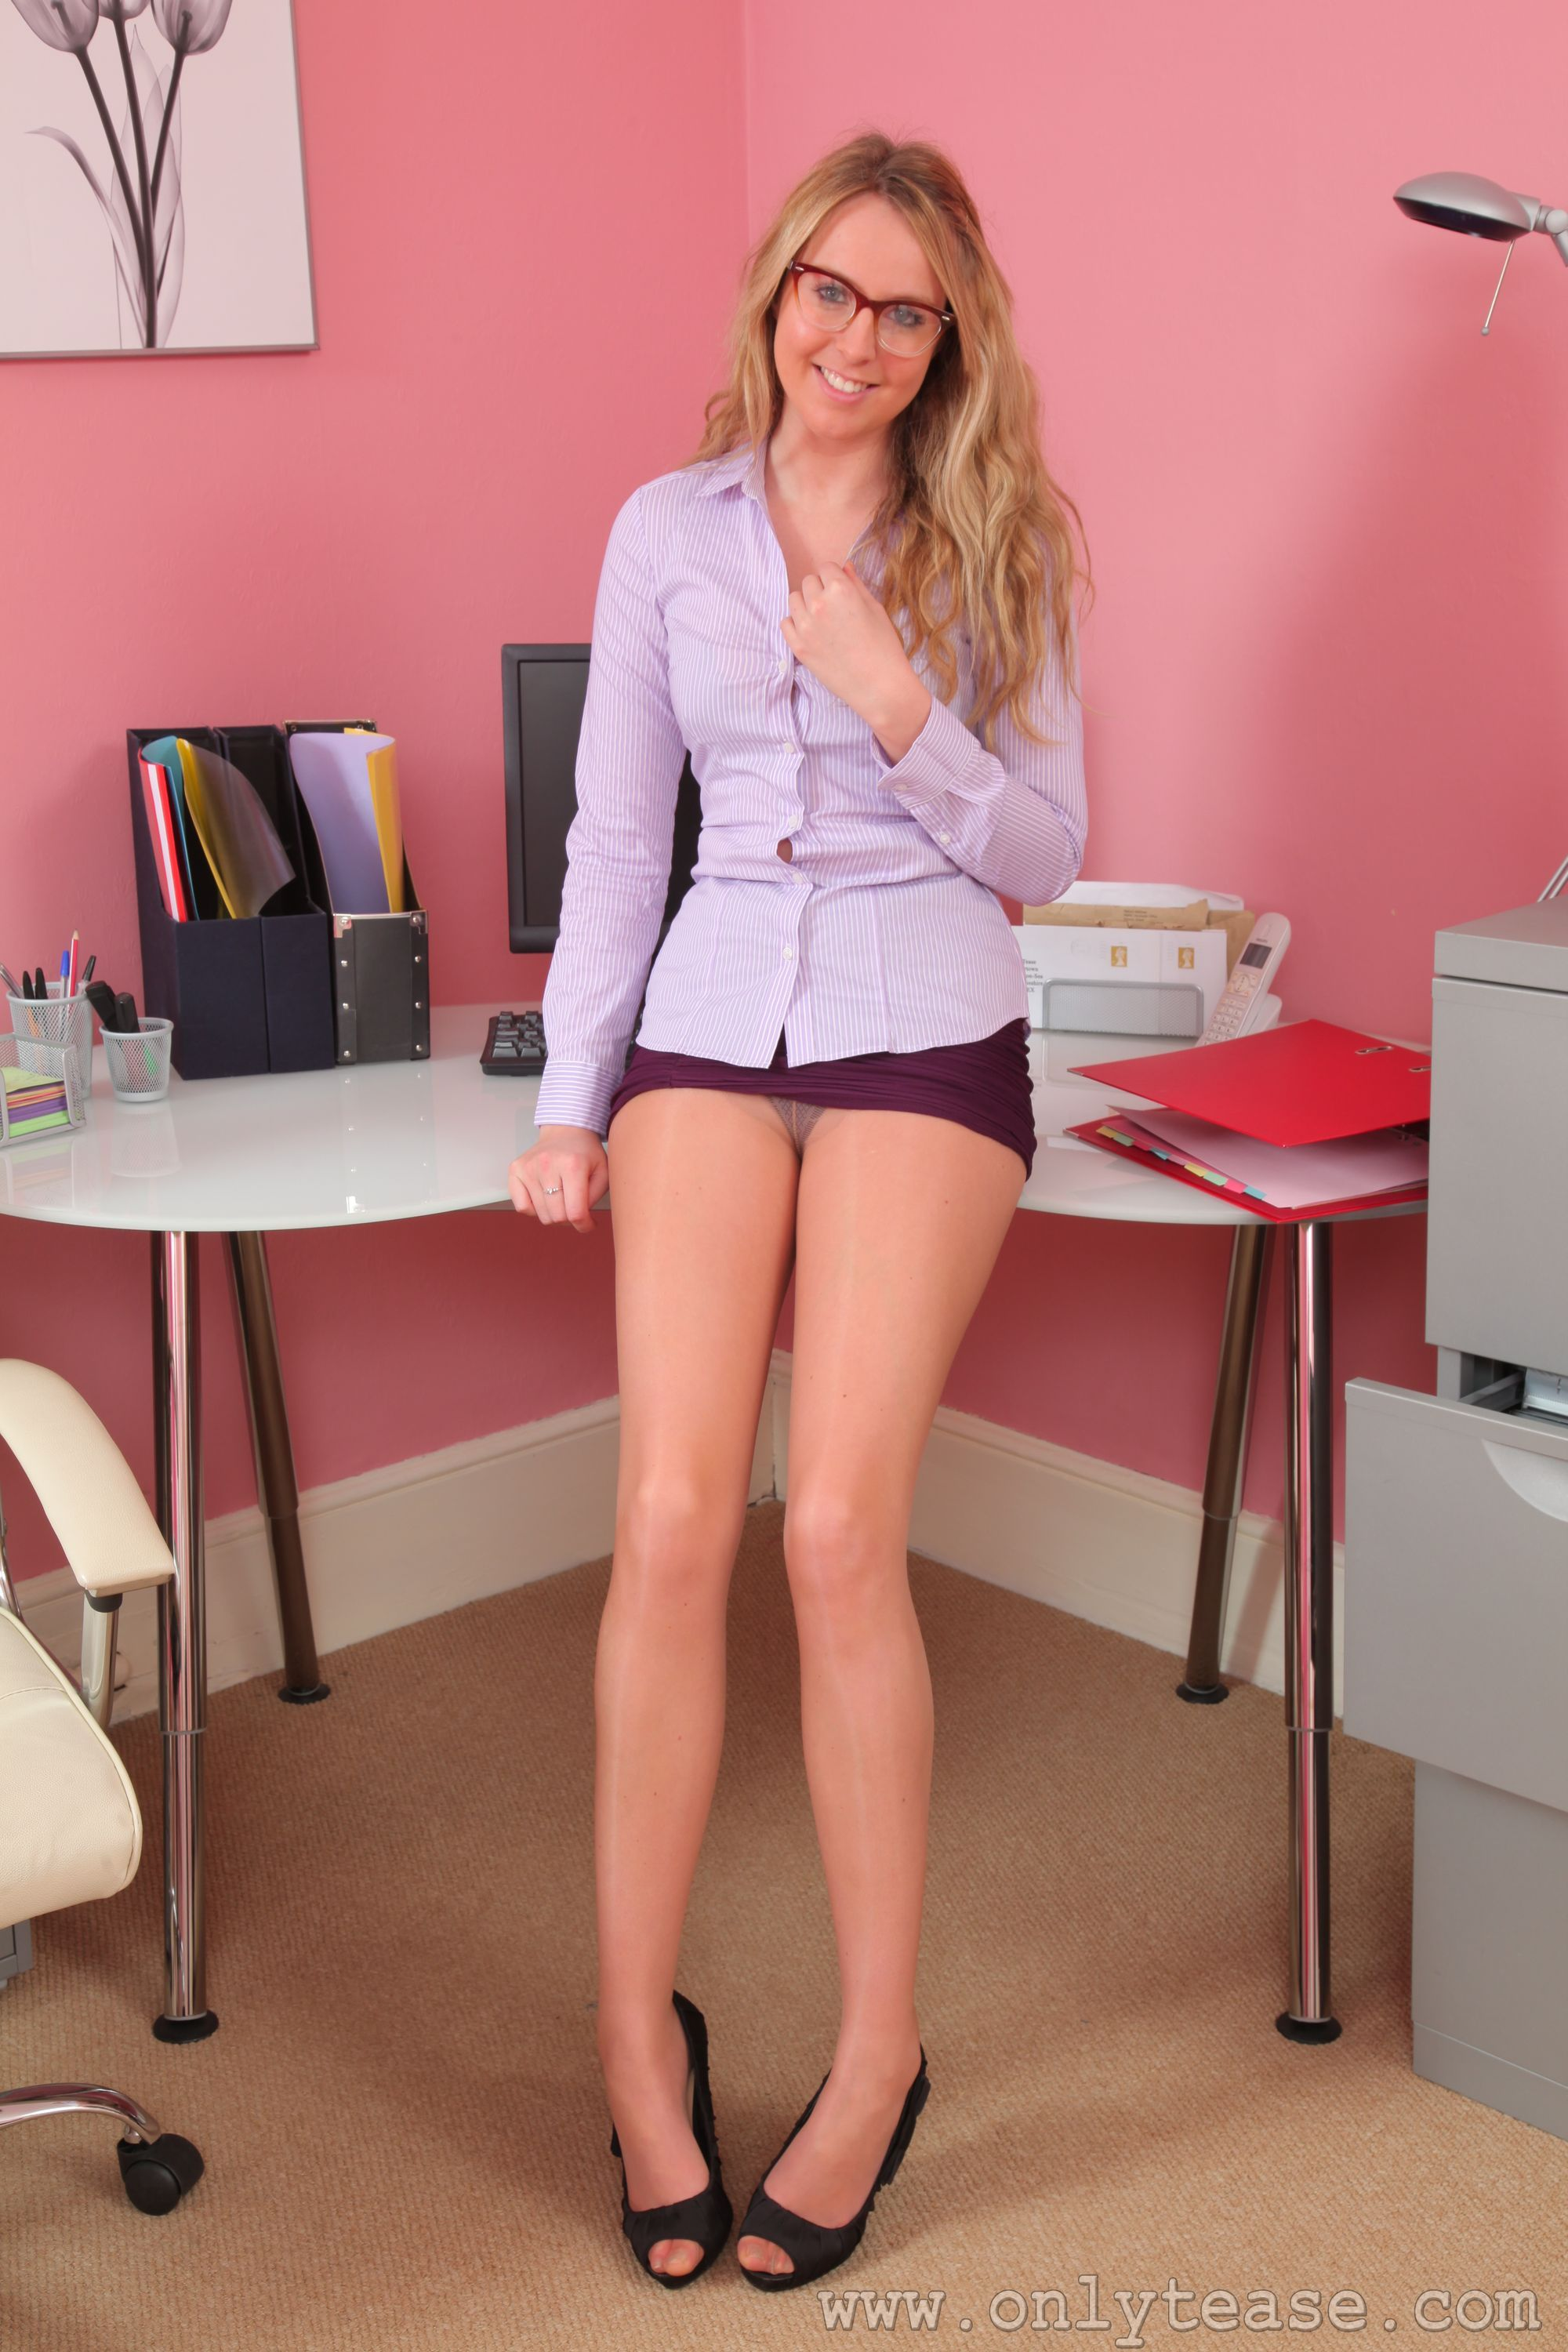 Grand Mini skirt legs pantyhose blew